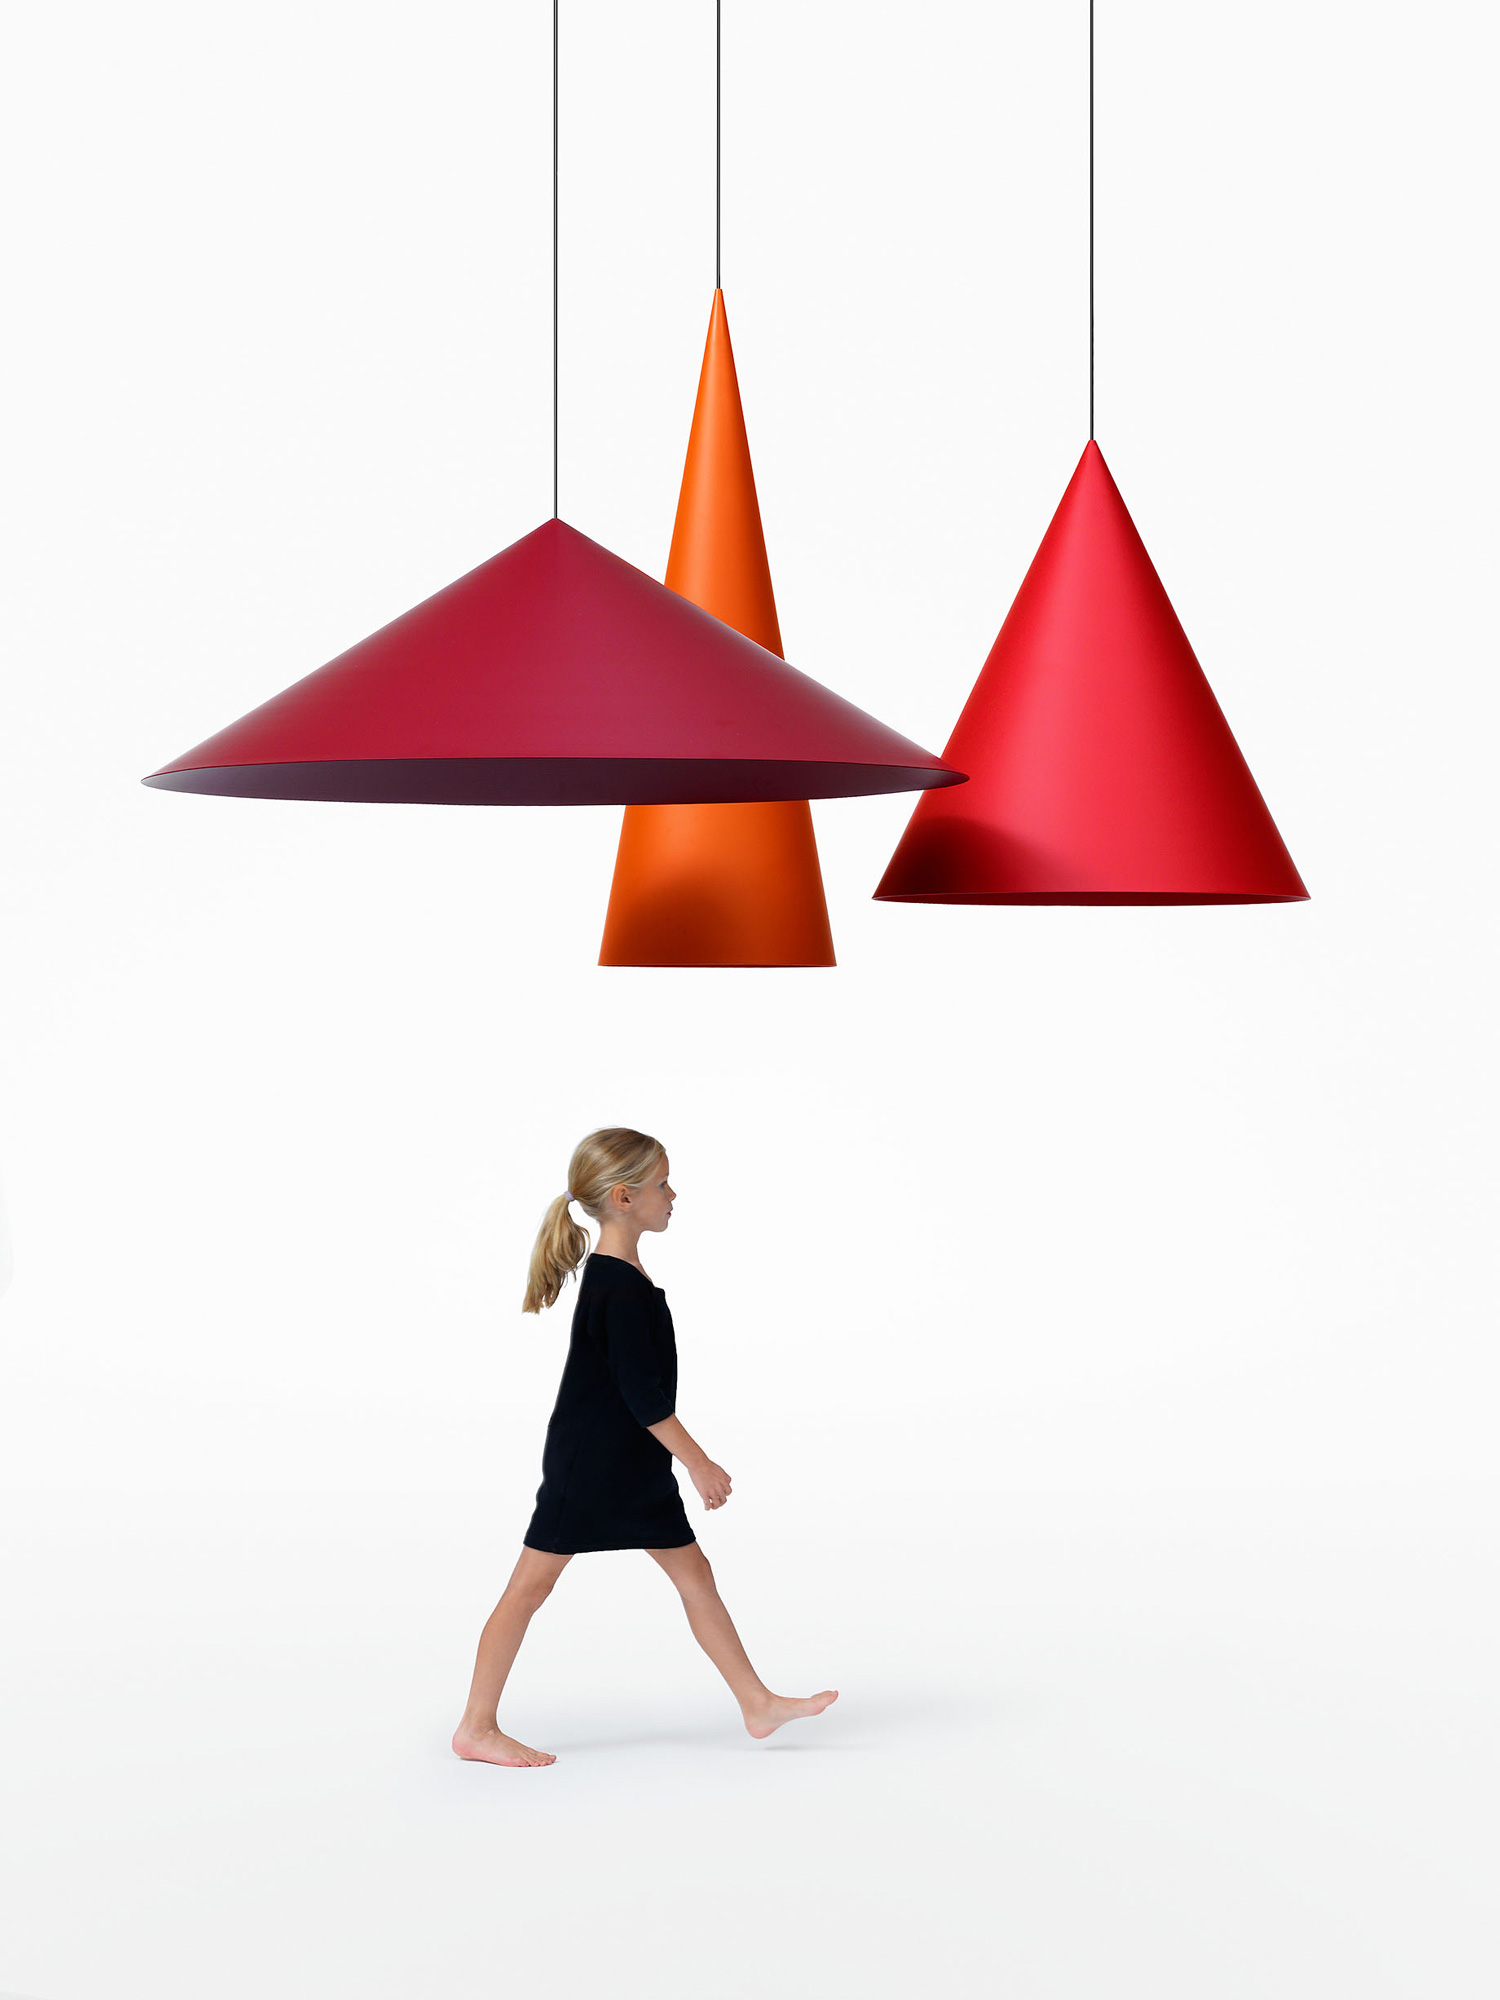 w151 Lamp by Claesson Koivisto Rune for Wastberg Lighting at Stockholm Design Week 2015 | Yellowtrace